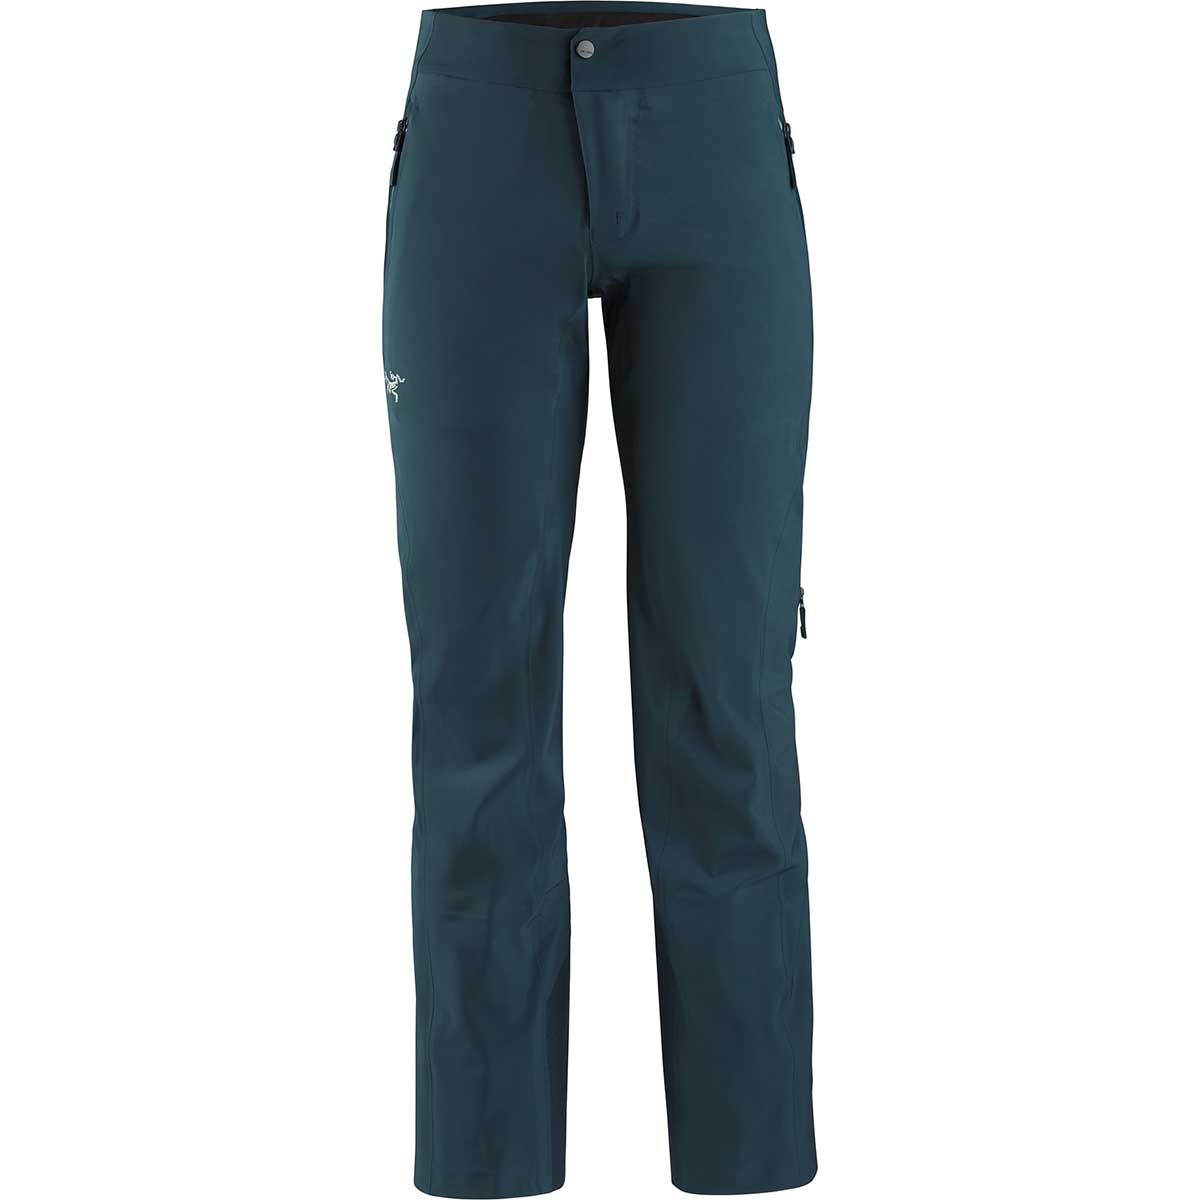 Arcteryx men's Cassiar Pant in Labrynth front view